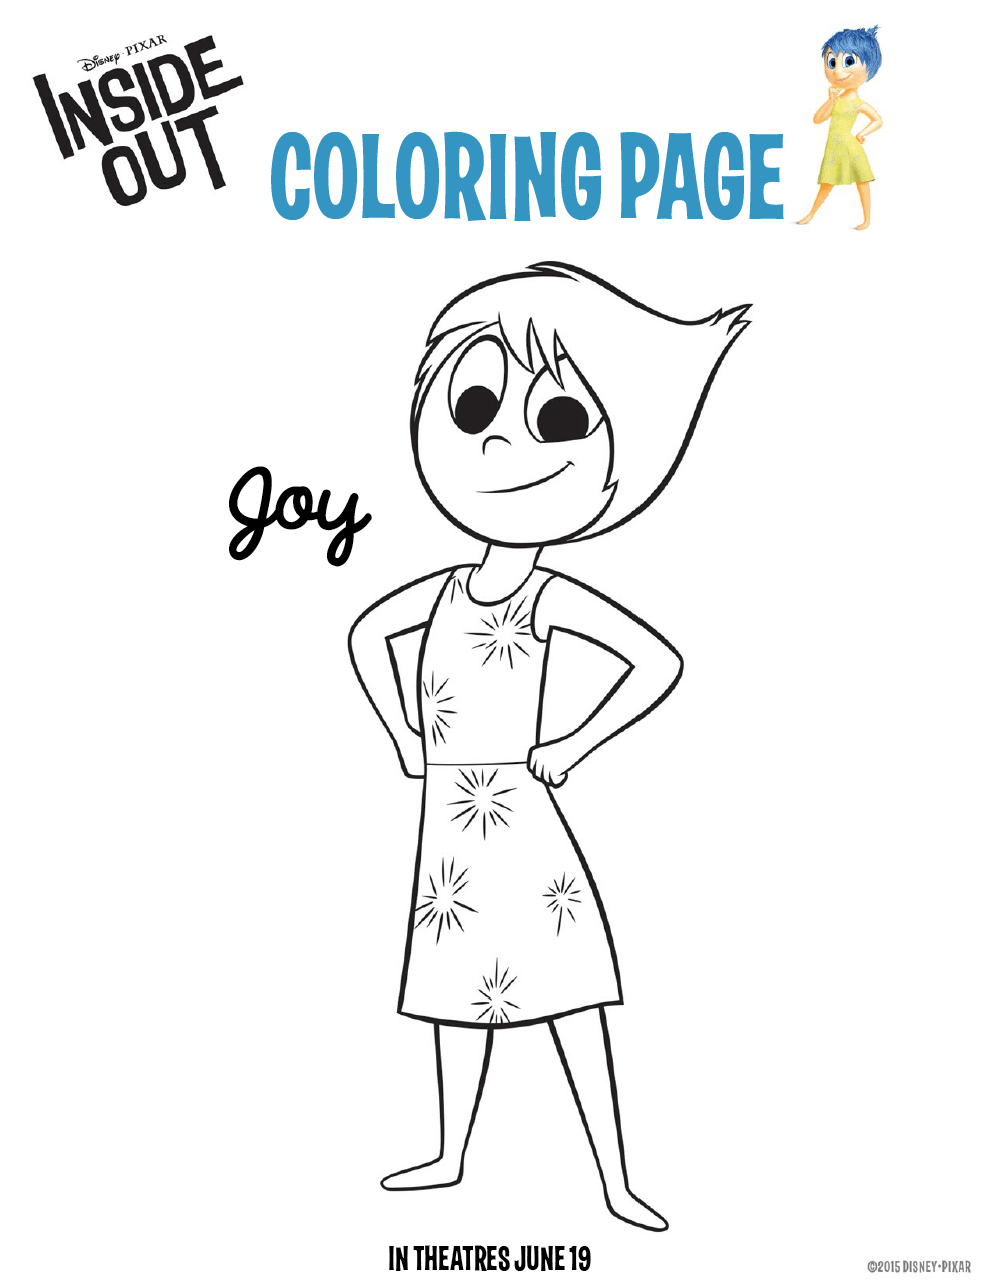 Inside Out Coloring Pages: Free Downloads For Kids #